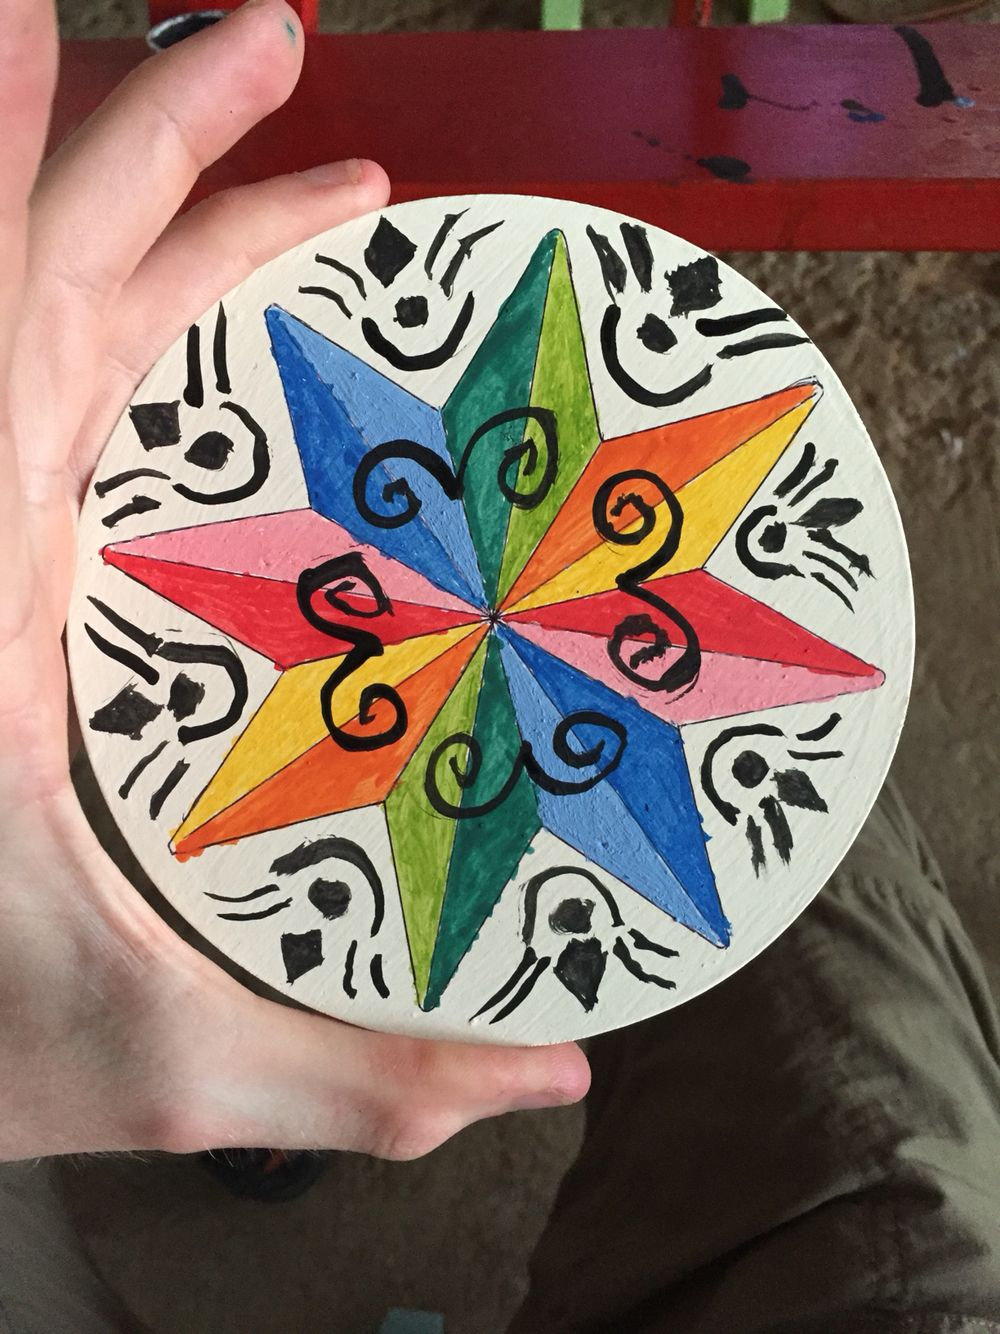 End result, a beautifully painted small ox cart wheel